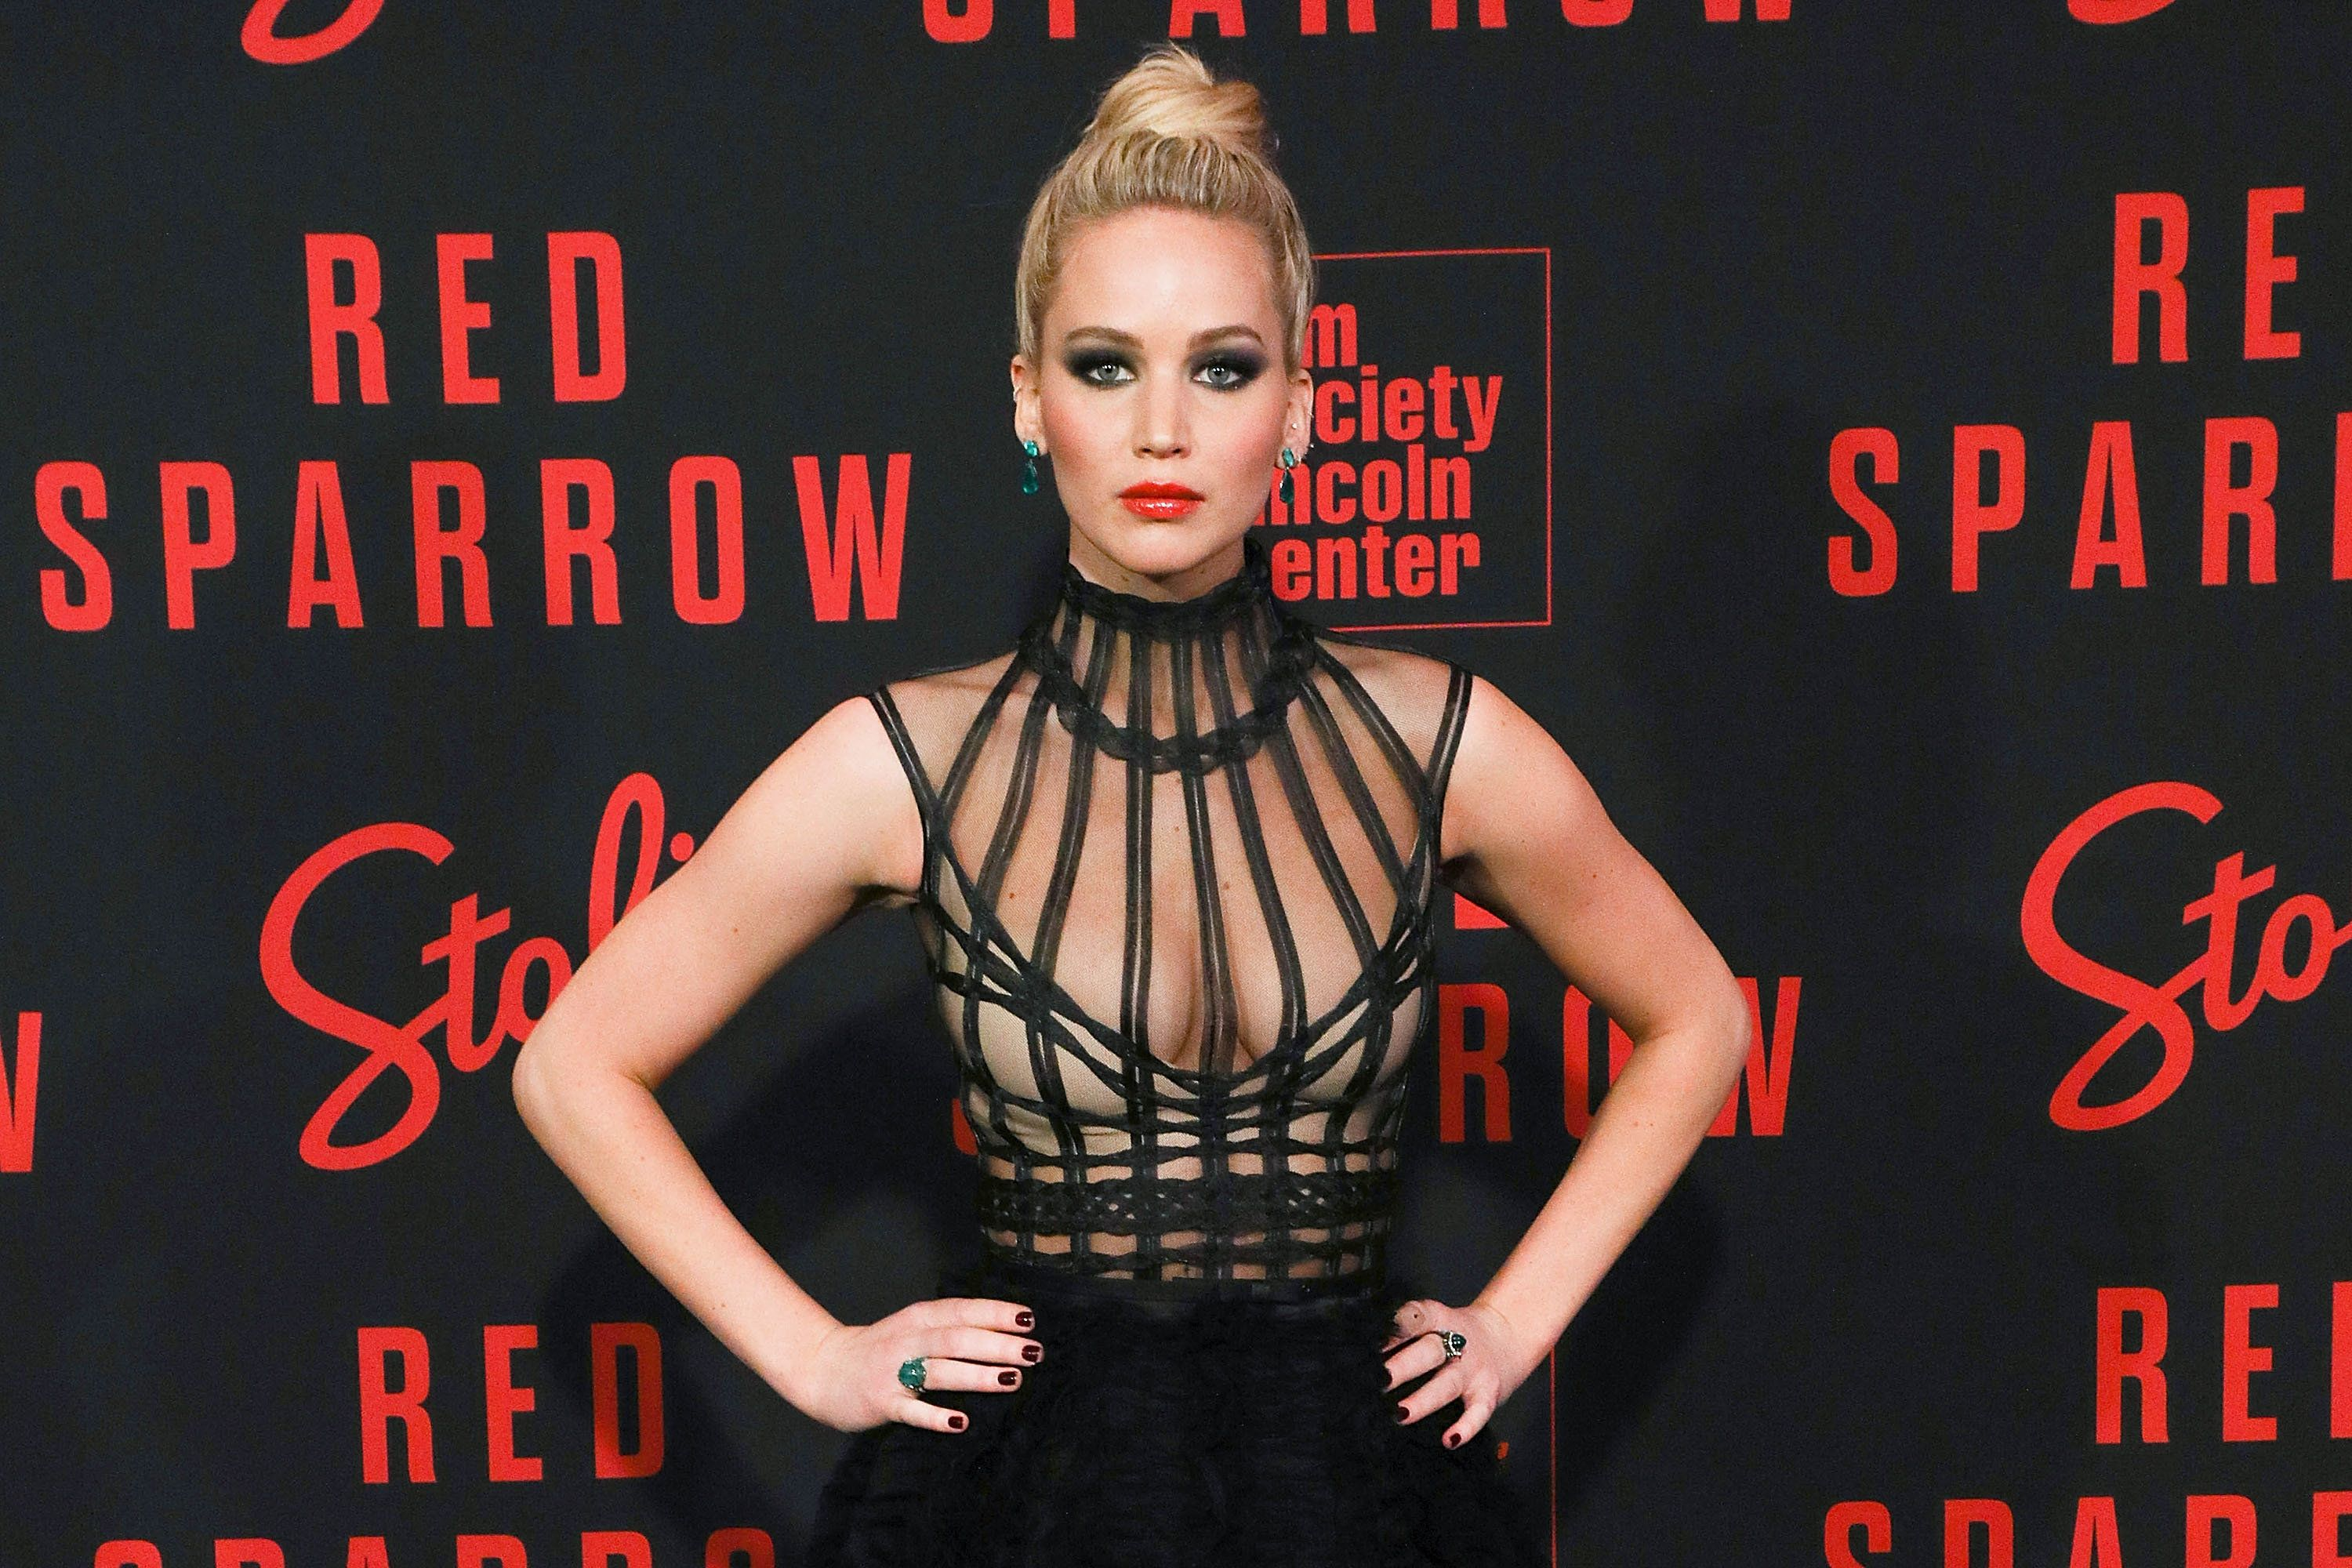 Jennifer Lawrence Says 'Red Sparrow' Nude Scenes Helped Her 'Take Power Back' After Naked Photo